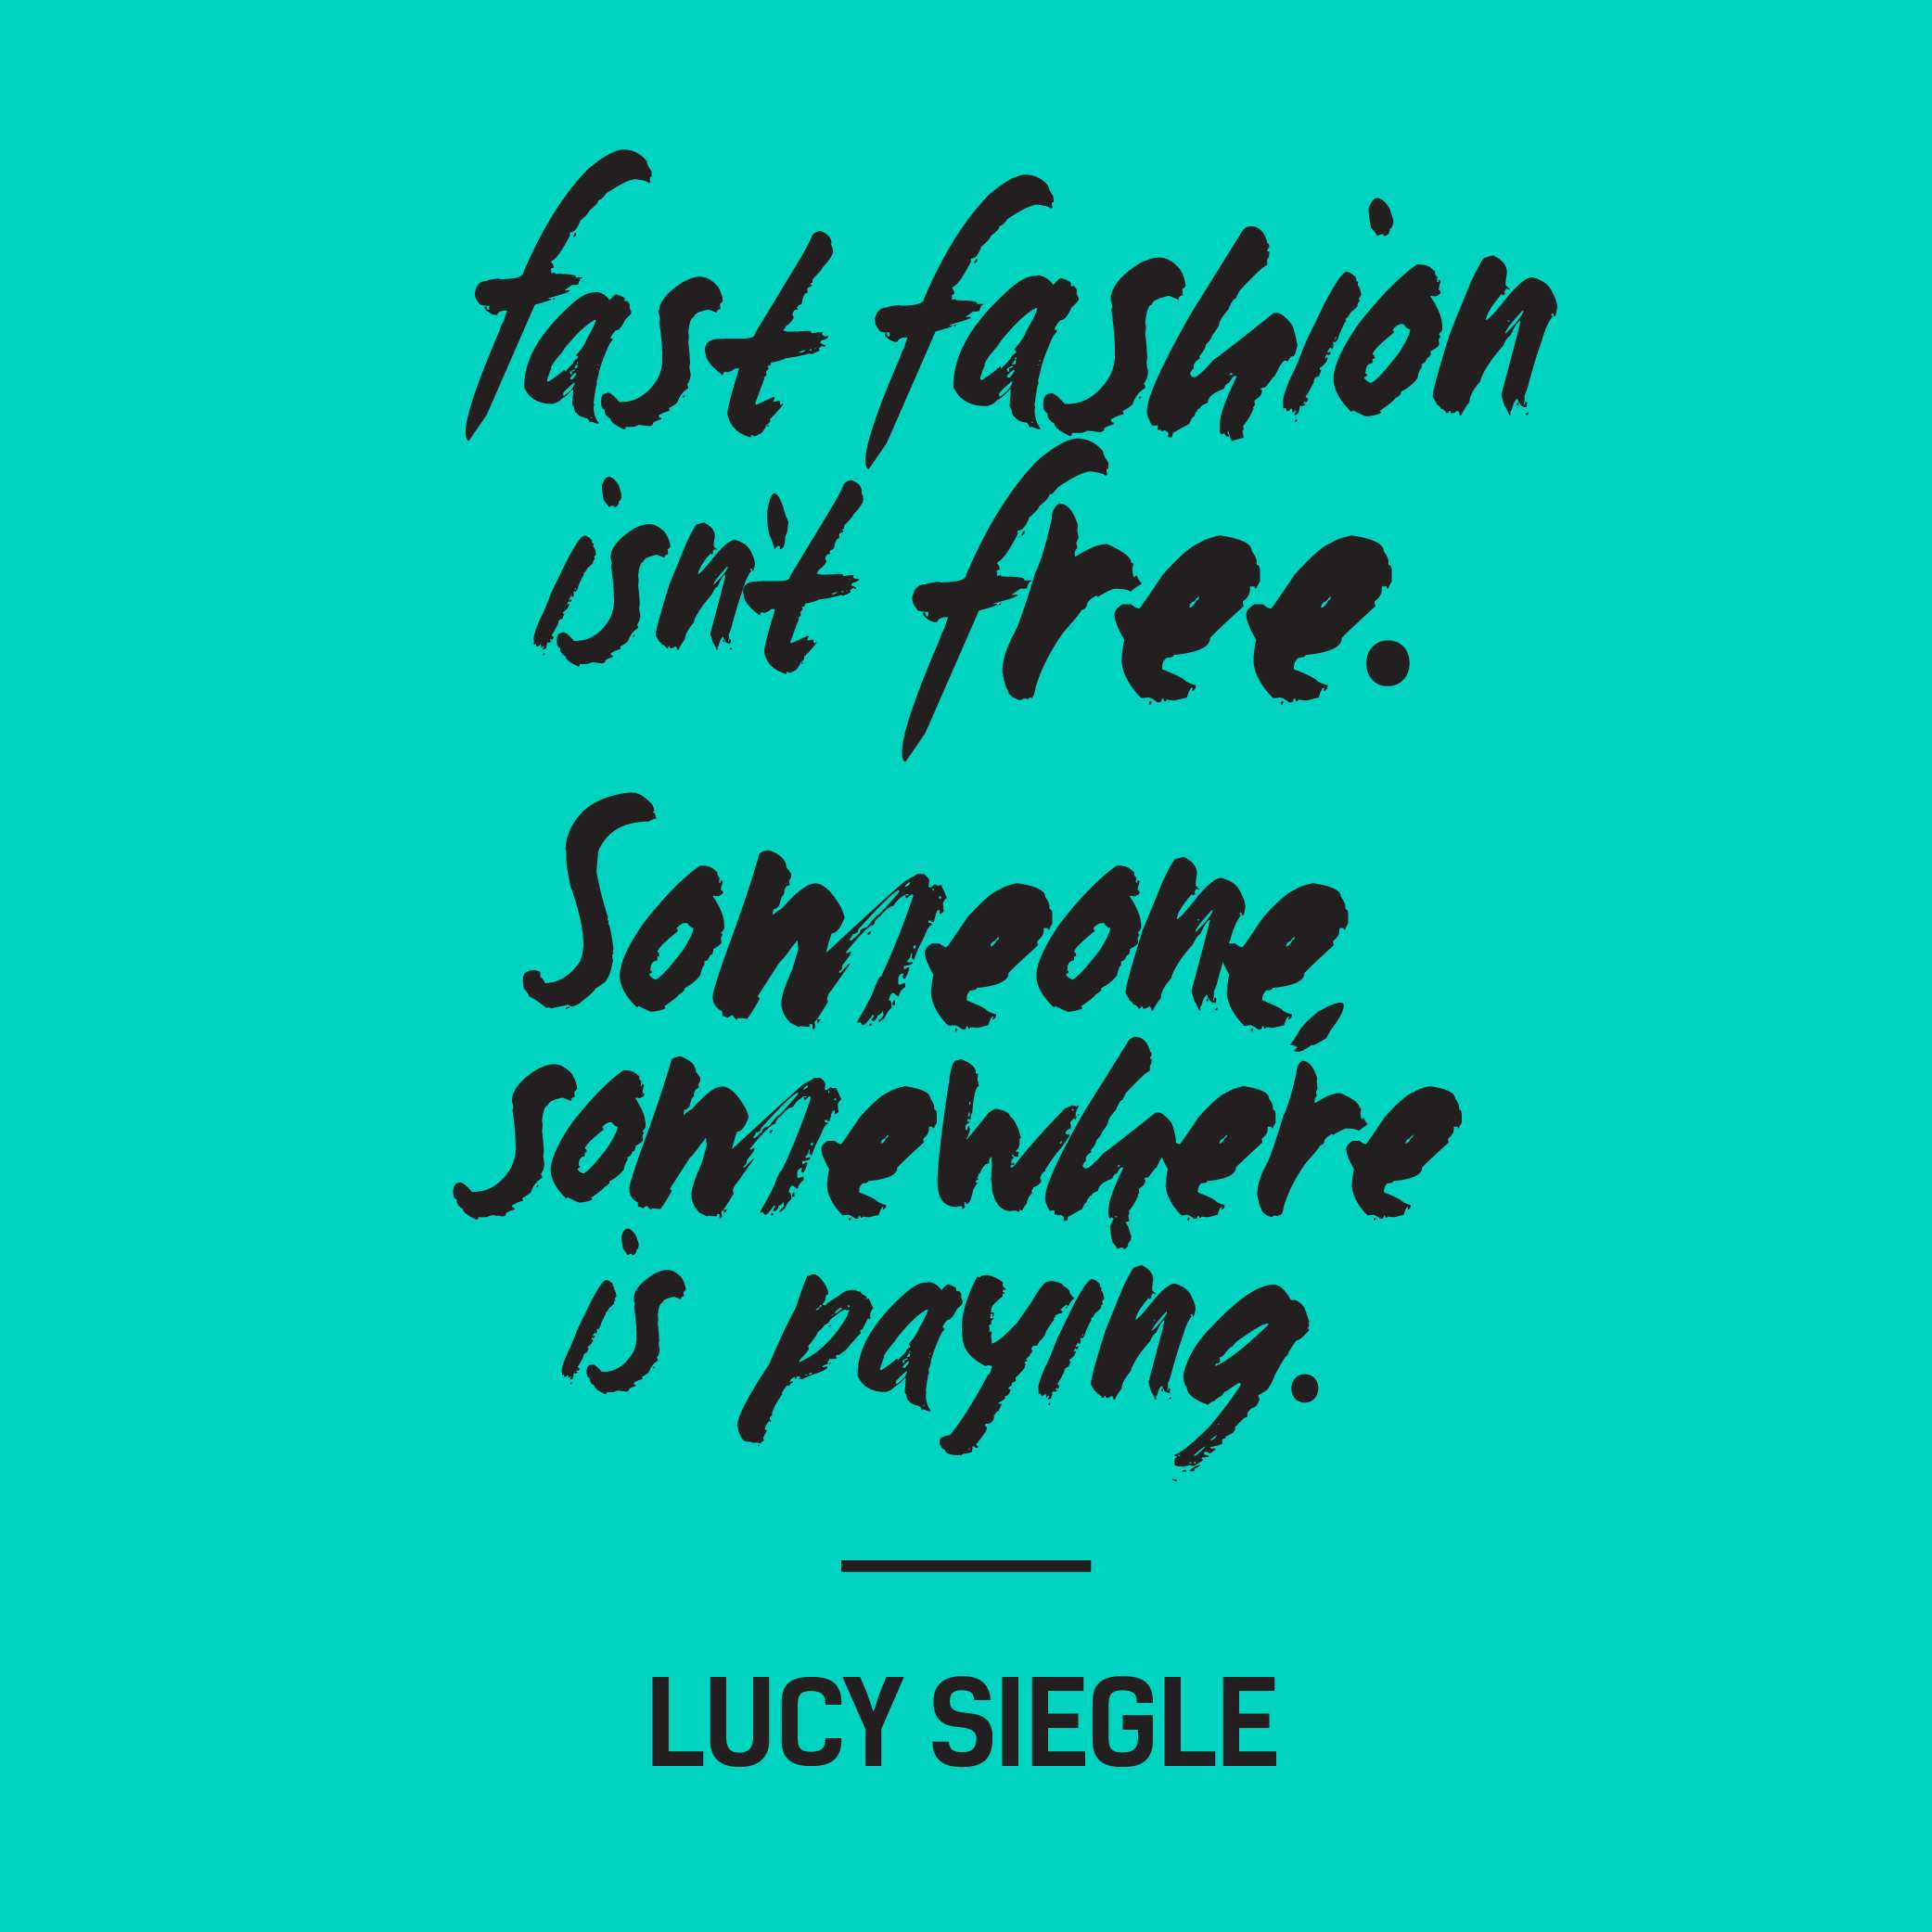 Fashion-Revolution_quote_lucy_siegle